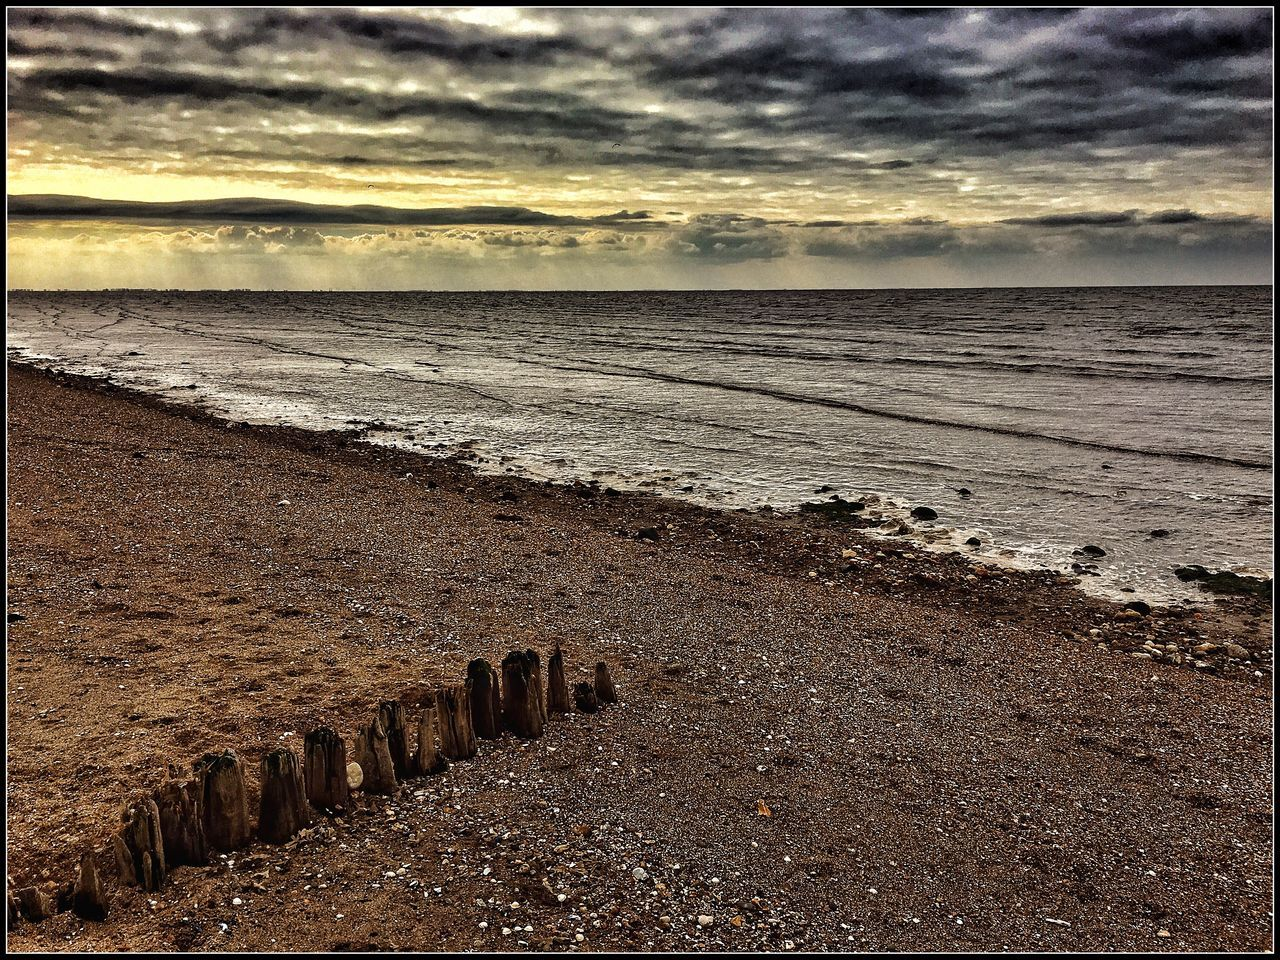 beach, sea, nature, tranquility, horizon over water, beauty in nature, water, tranquil scene, sand, scenics, sky, no people, outdoors, cloud - sky, sunset, day